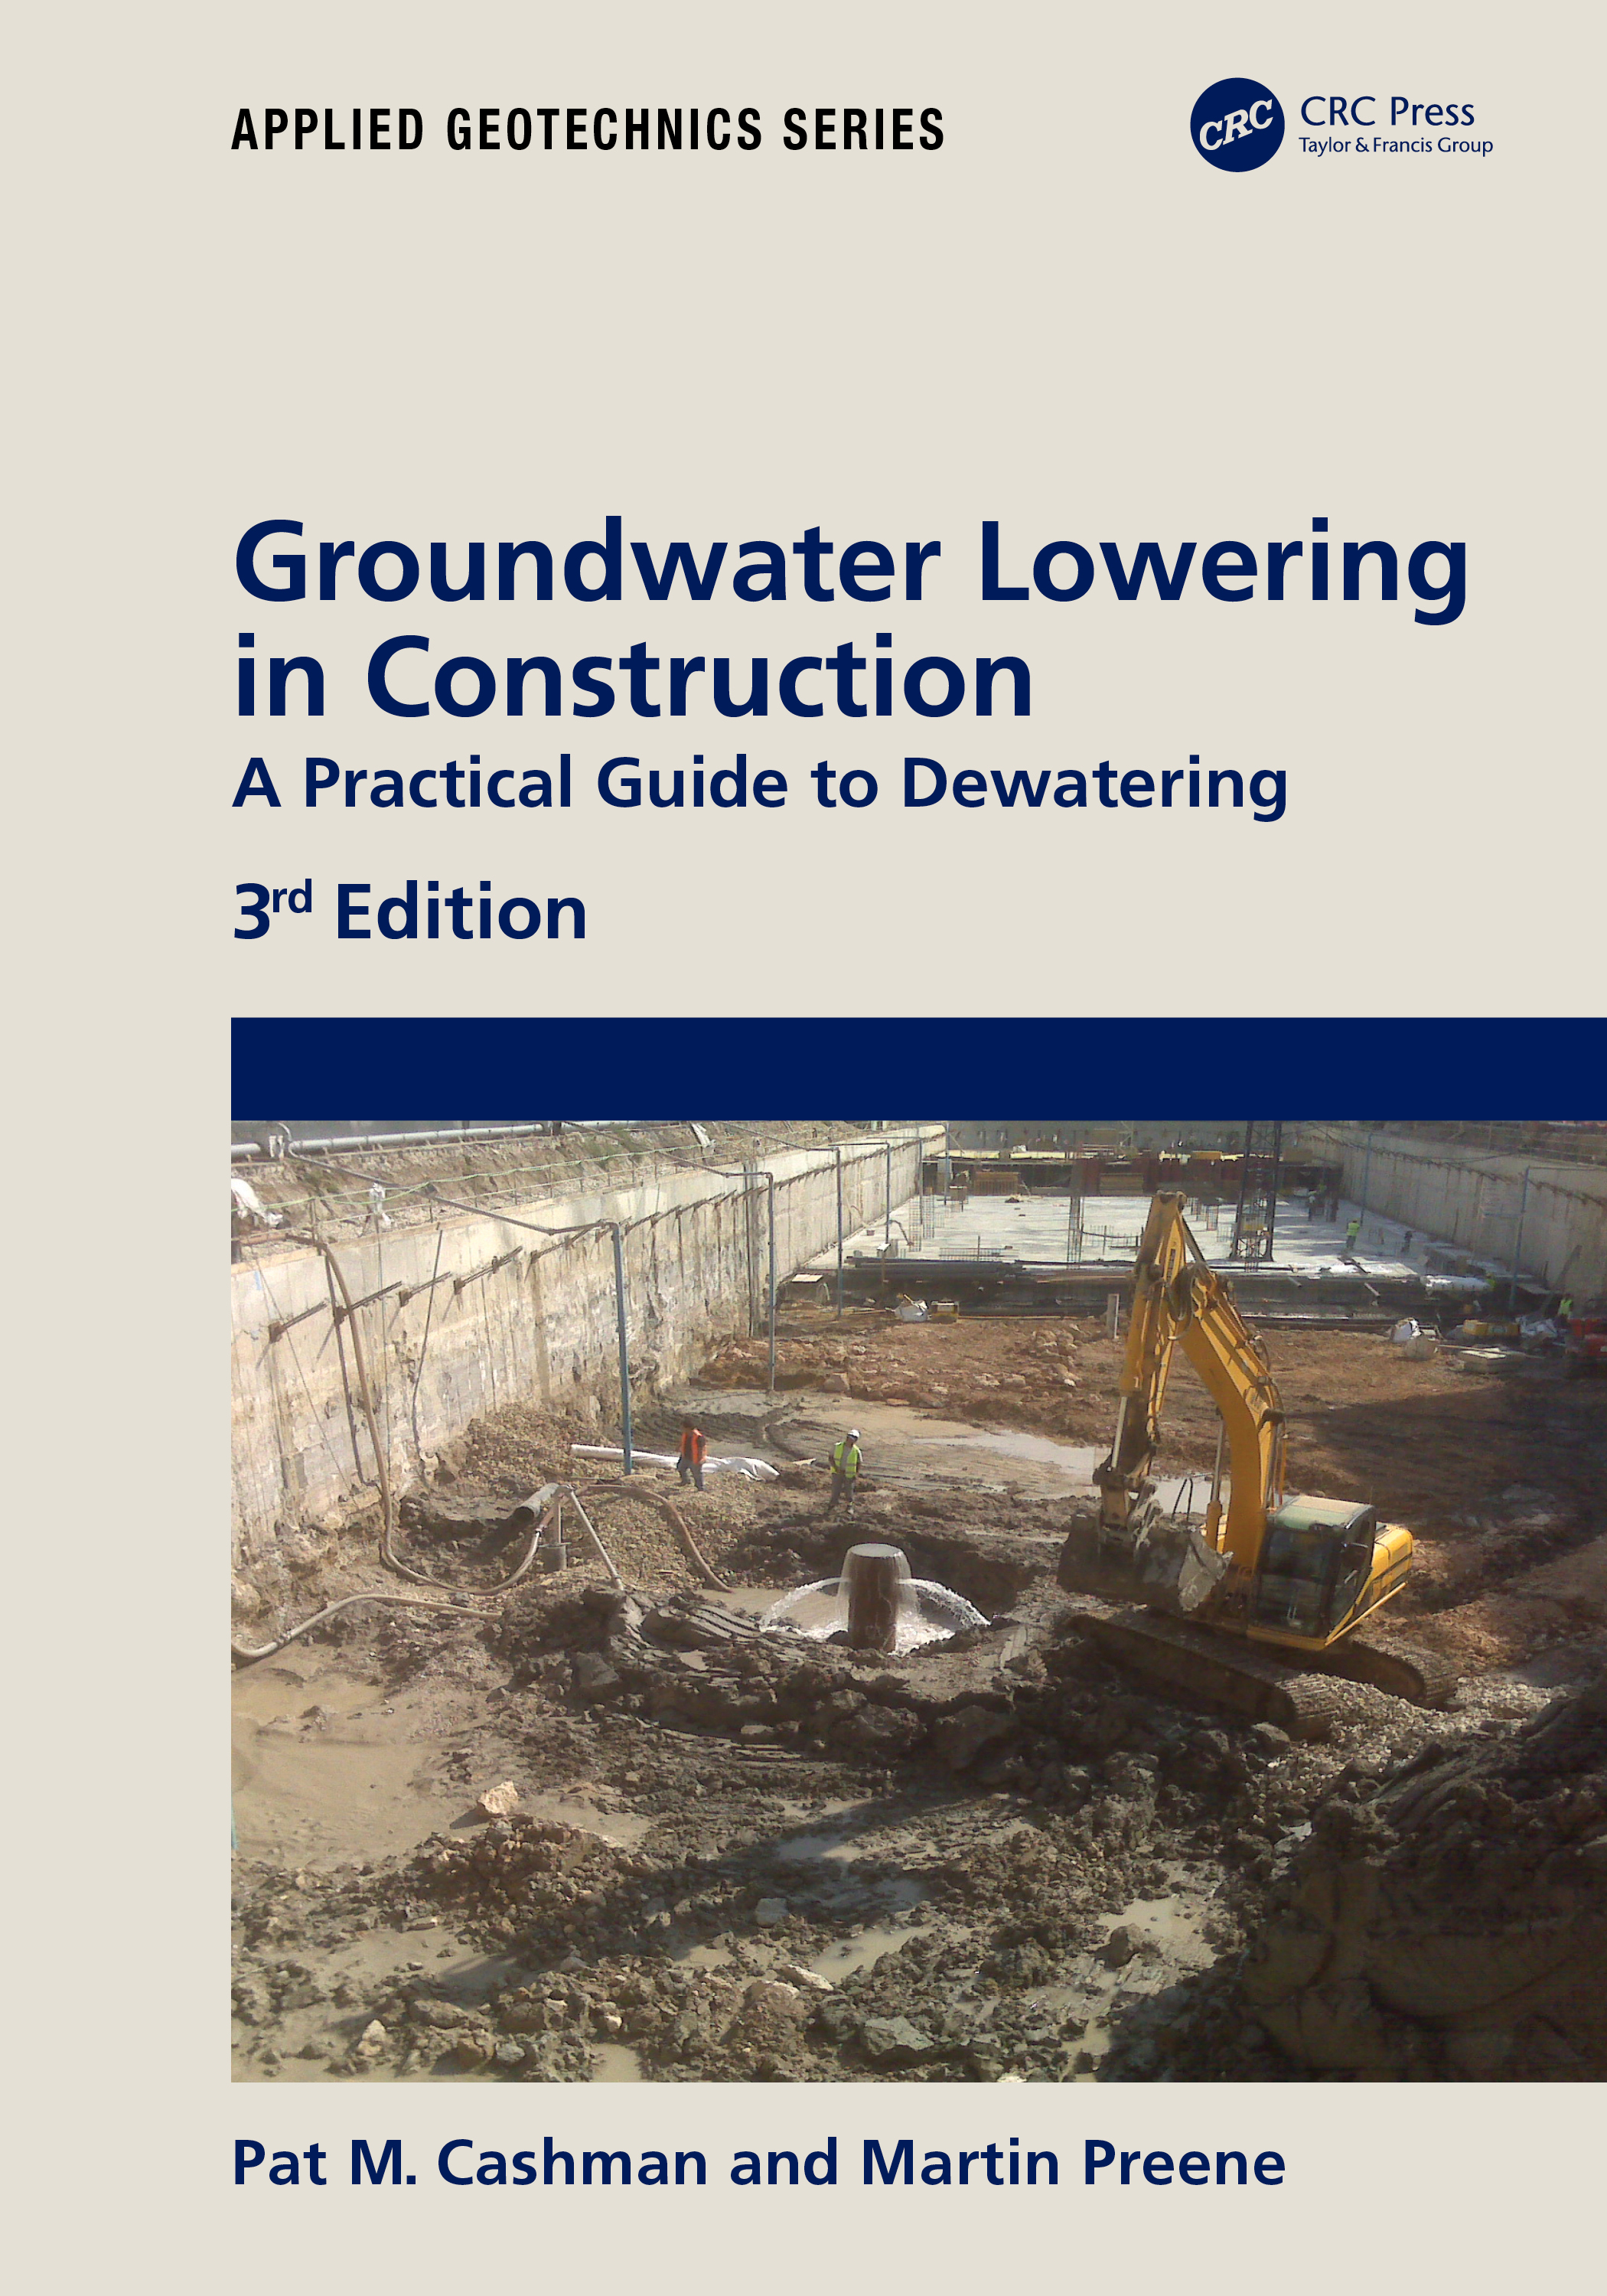 Groundwater Lowering in Construction: A Practical Guide to Dewatering book cover